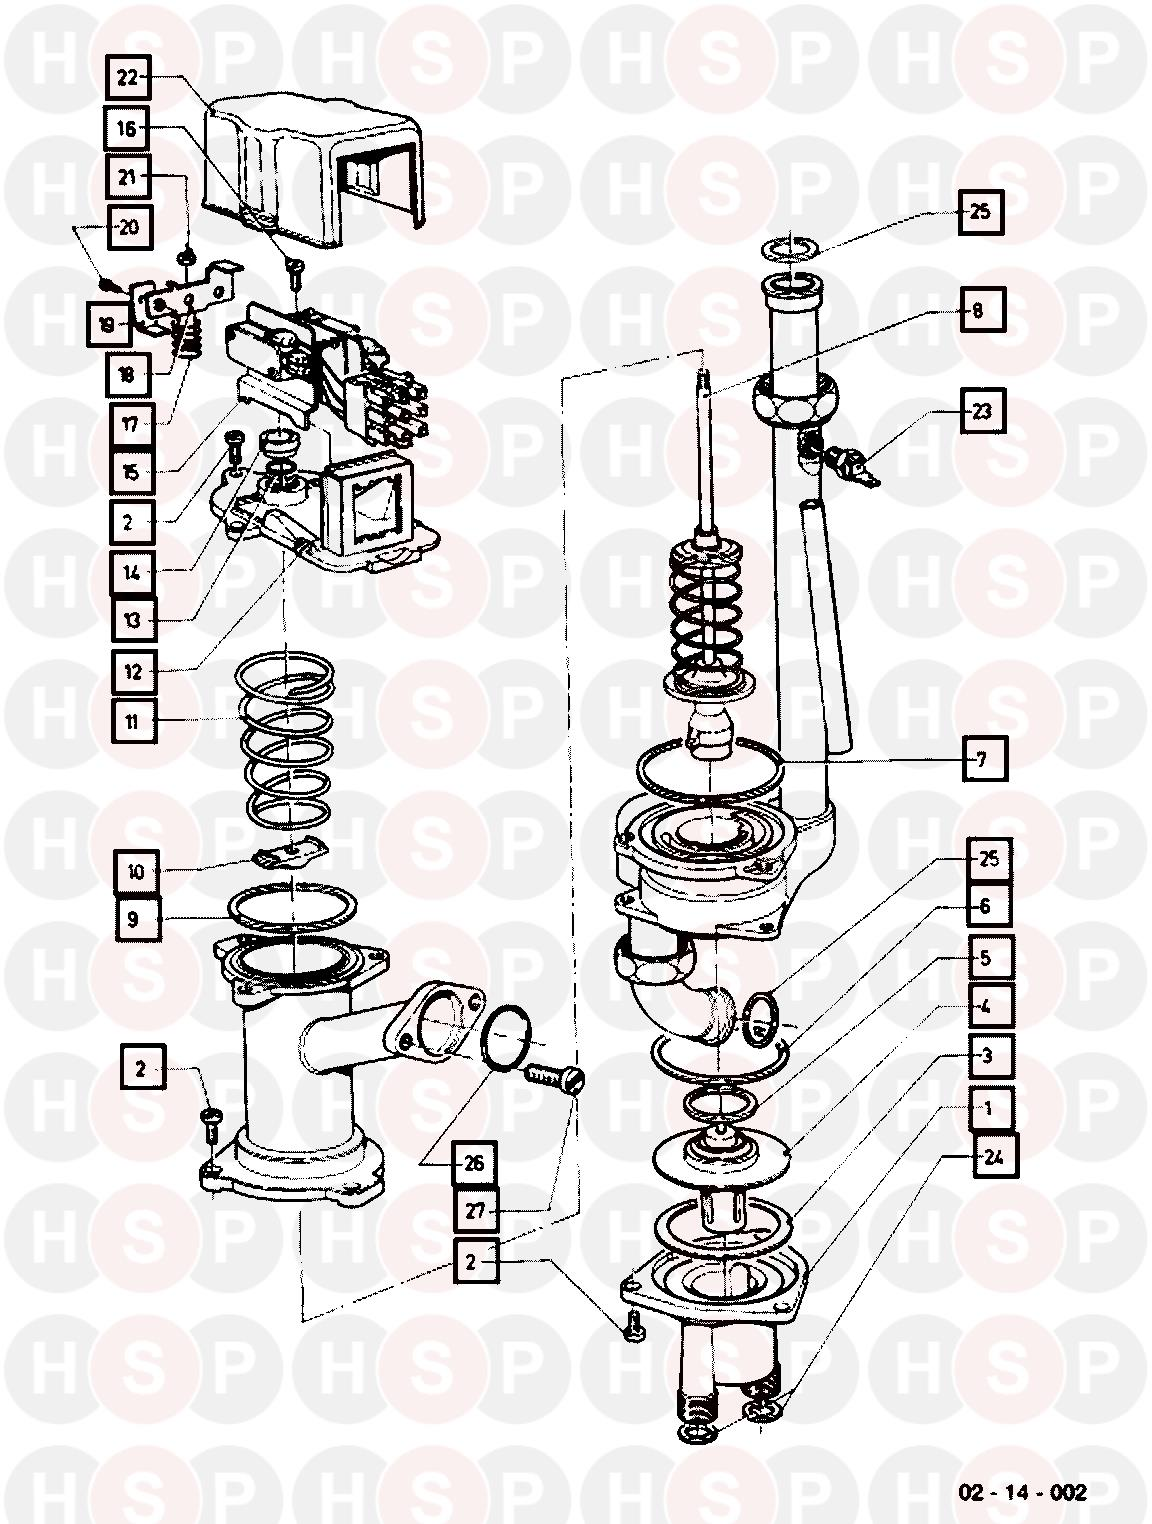 Vaillant VCW SINE 18 T3 WFH (DIVERTER VALVE) Diagram